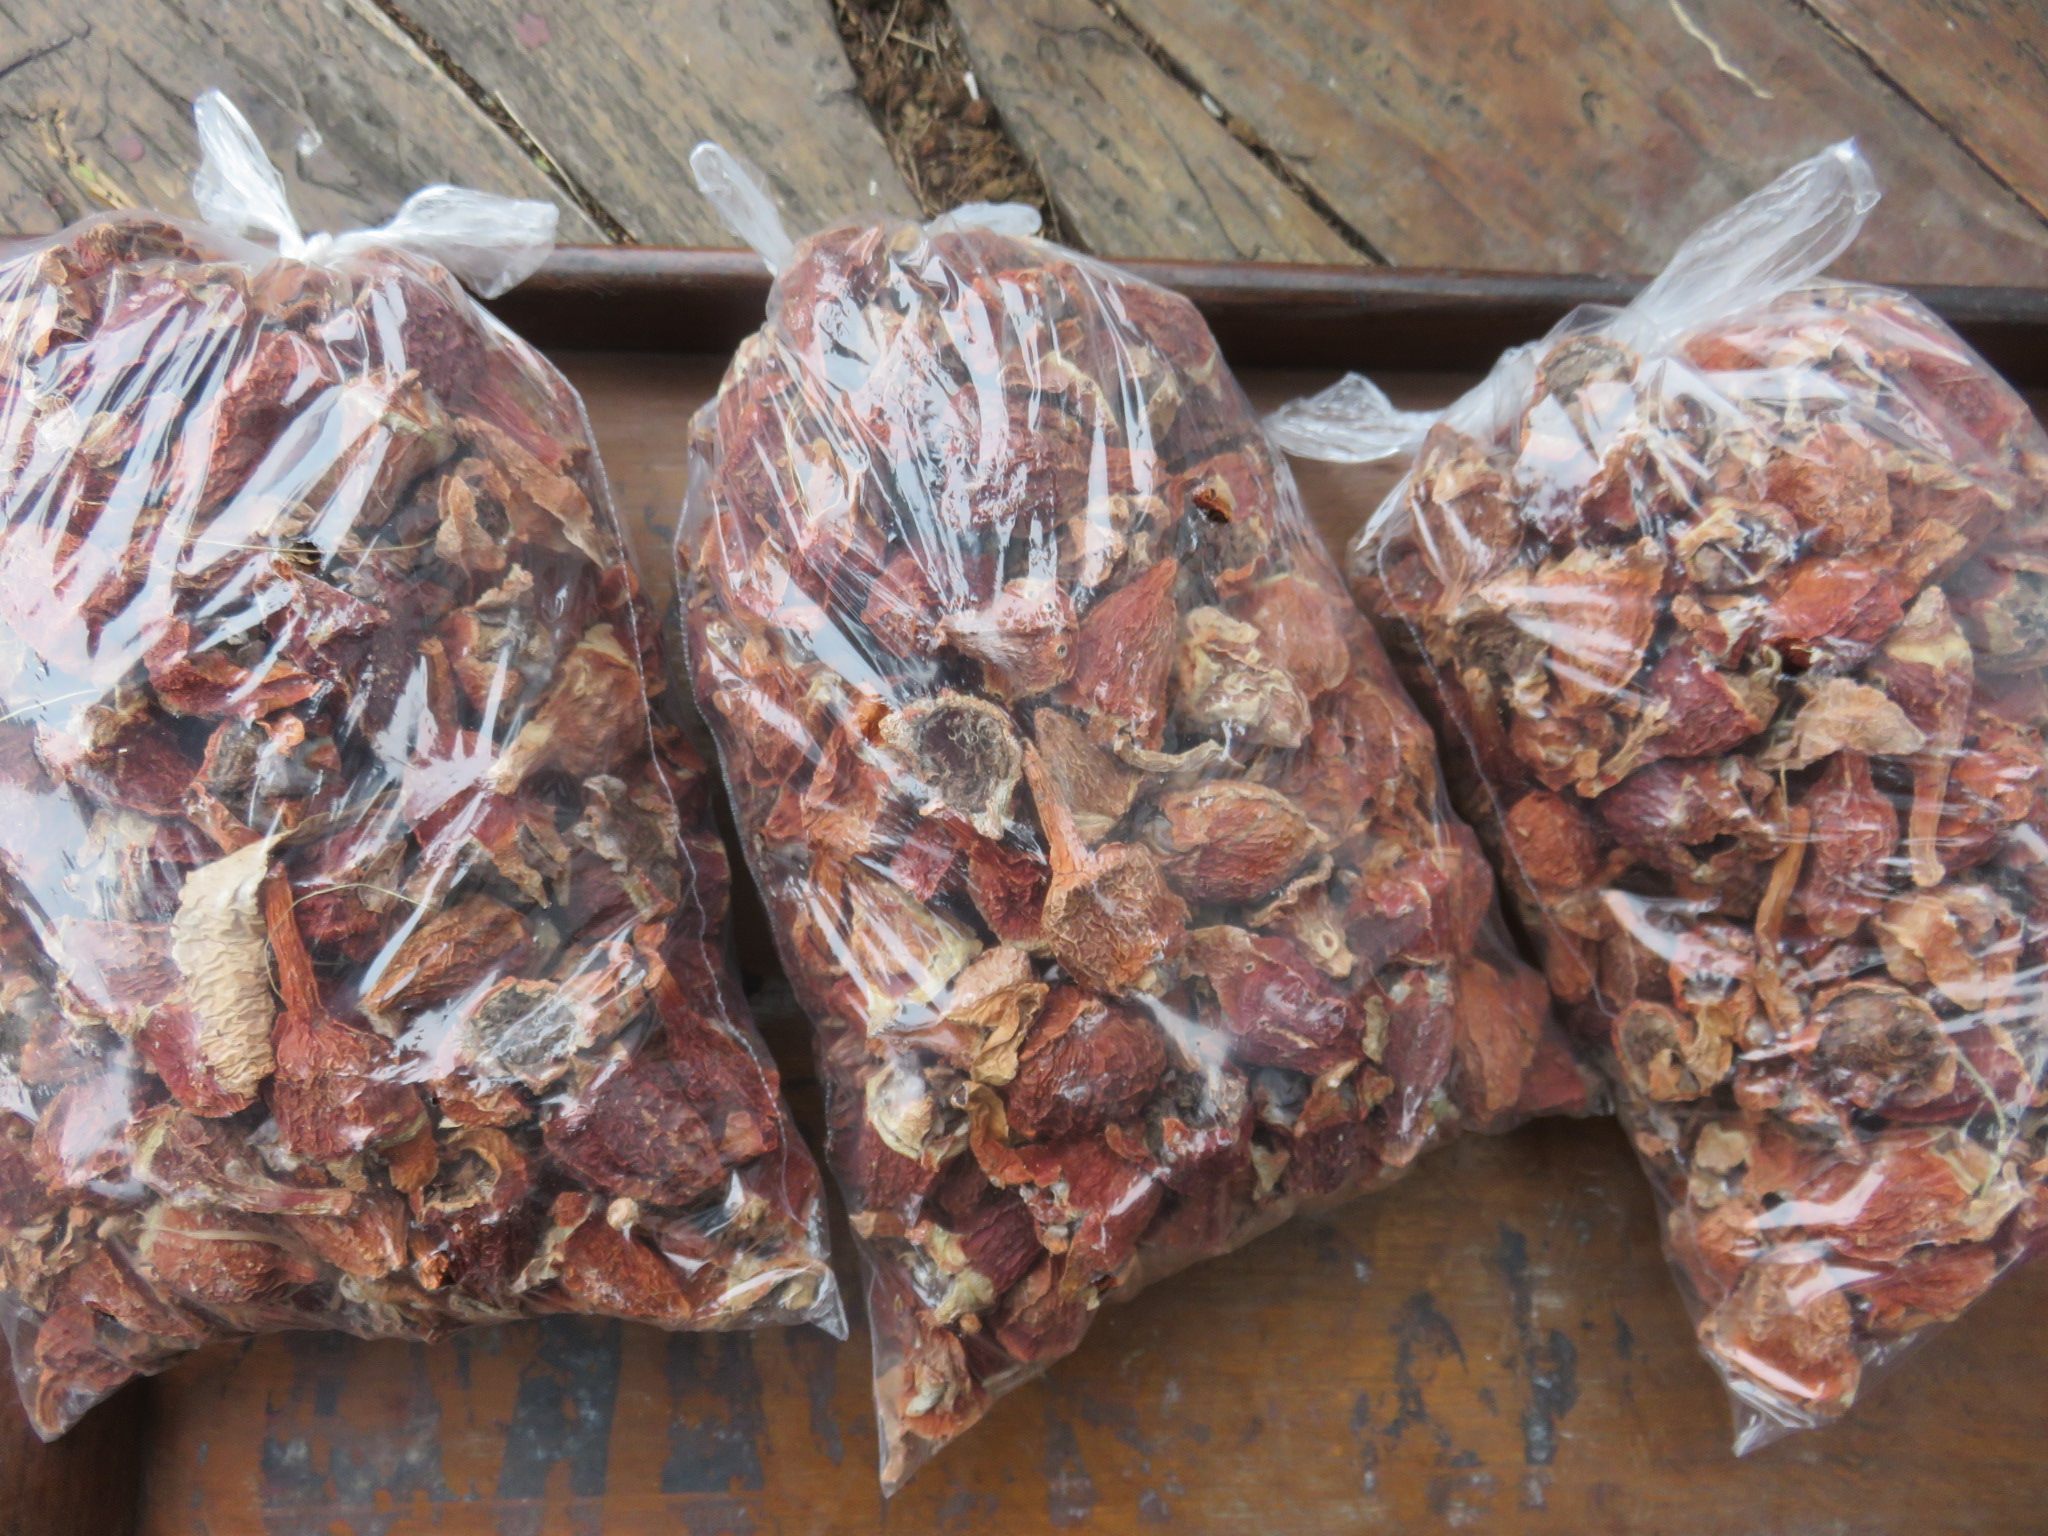 Kilo bags of sour figs for sale at the M5 fruit stall